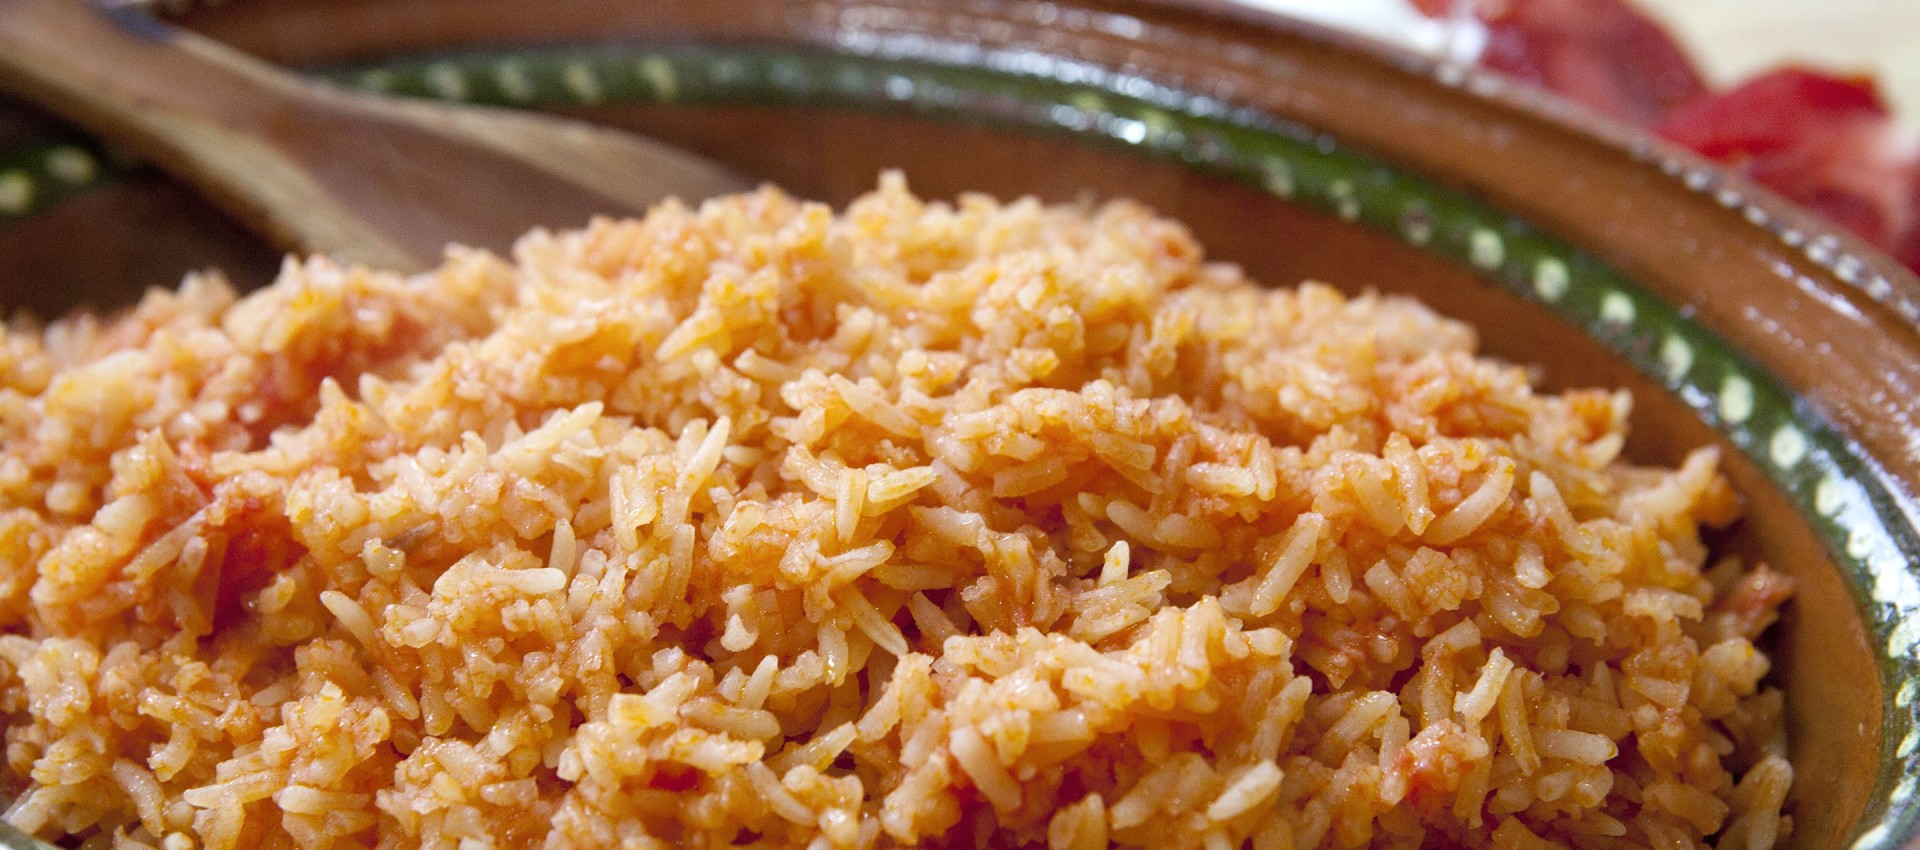 RED RICE Image